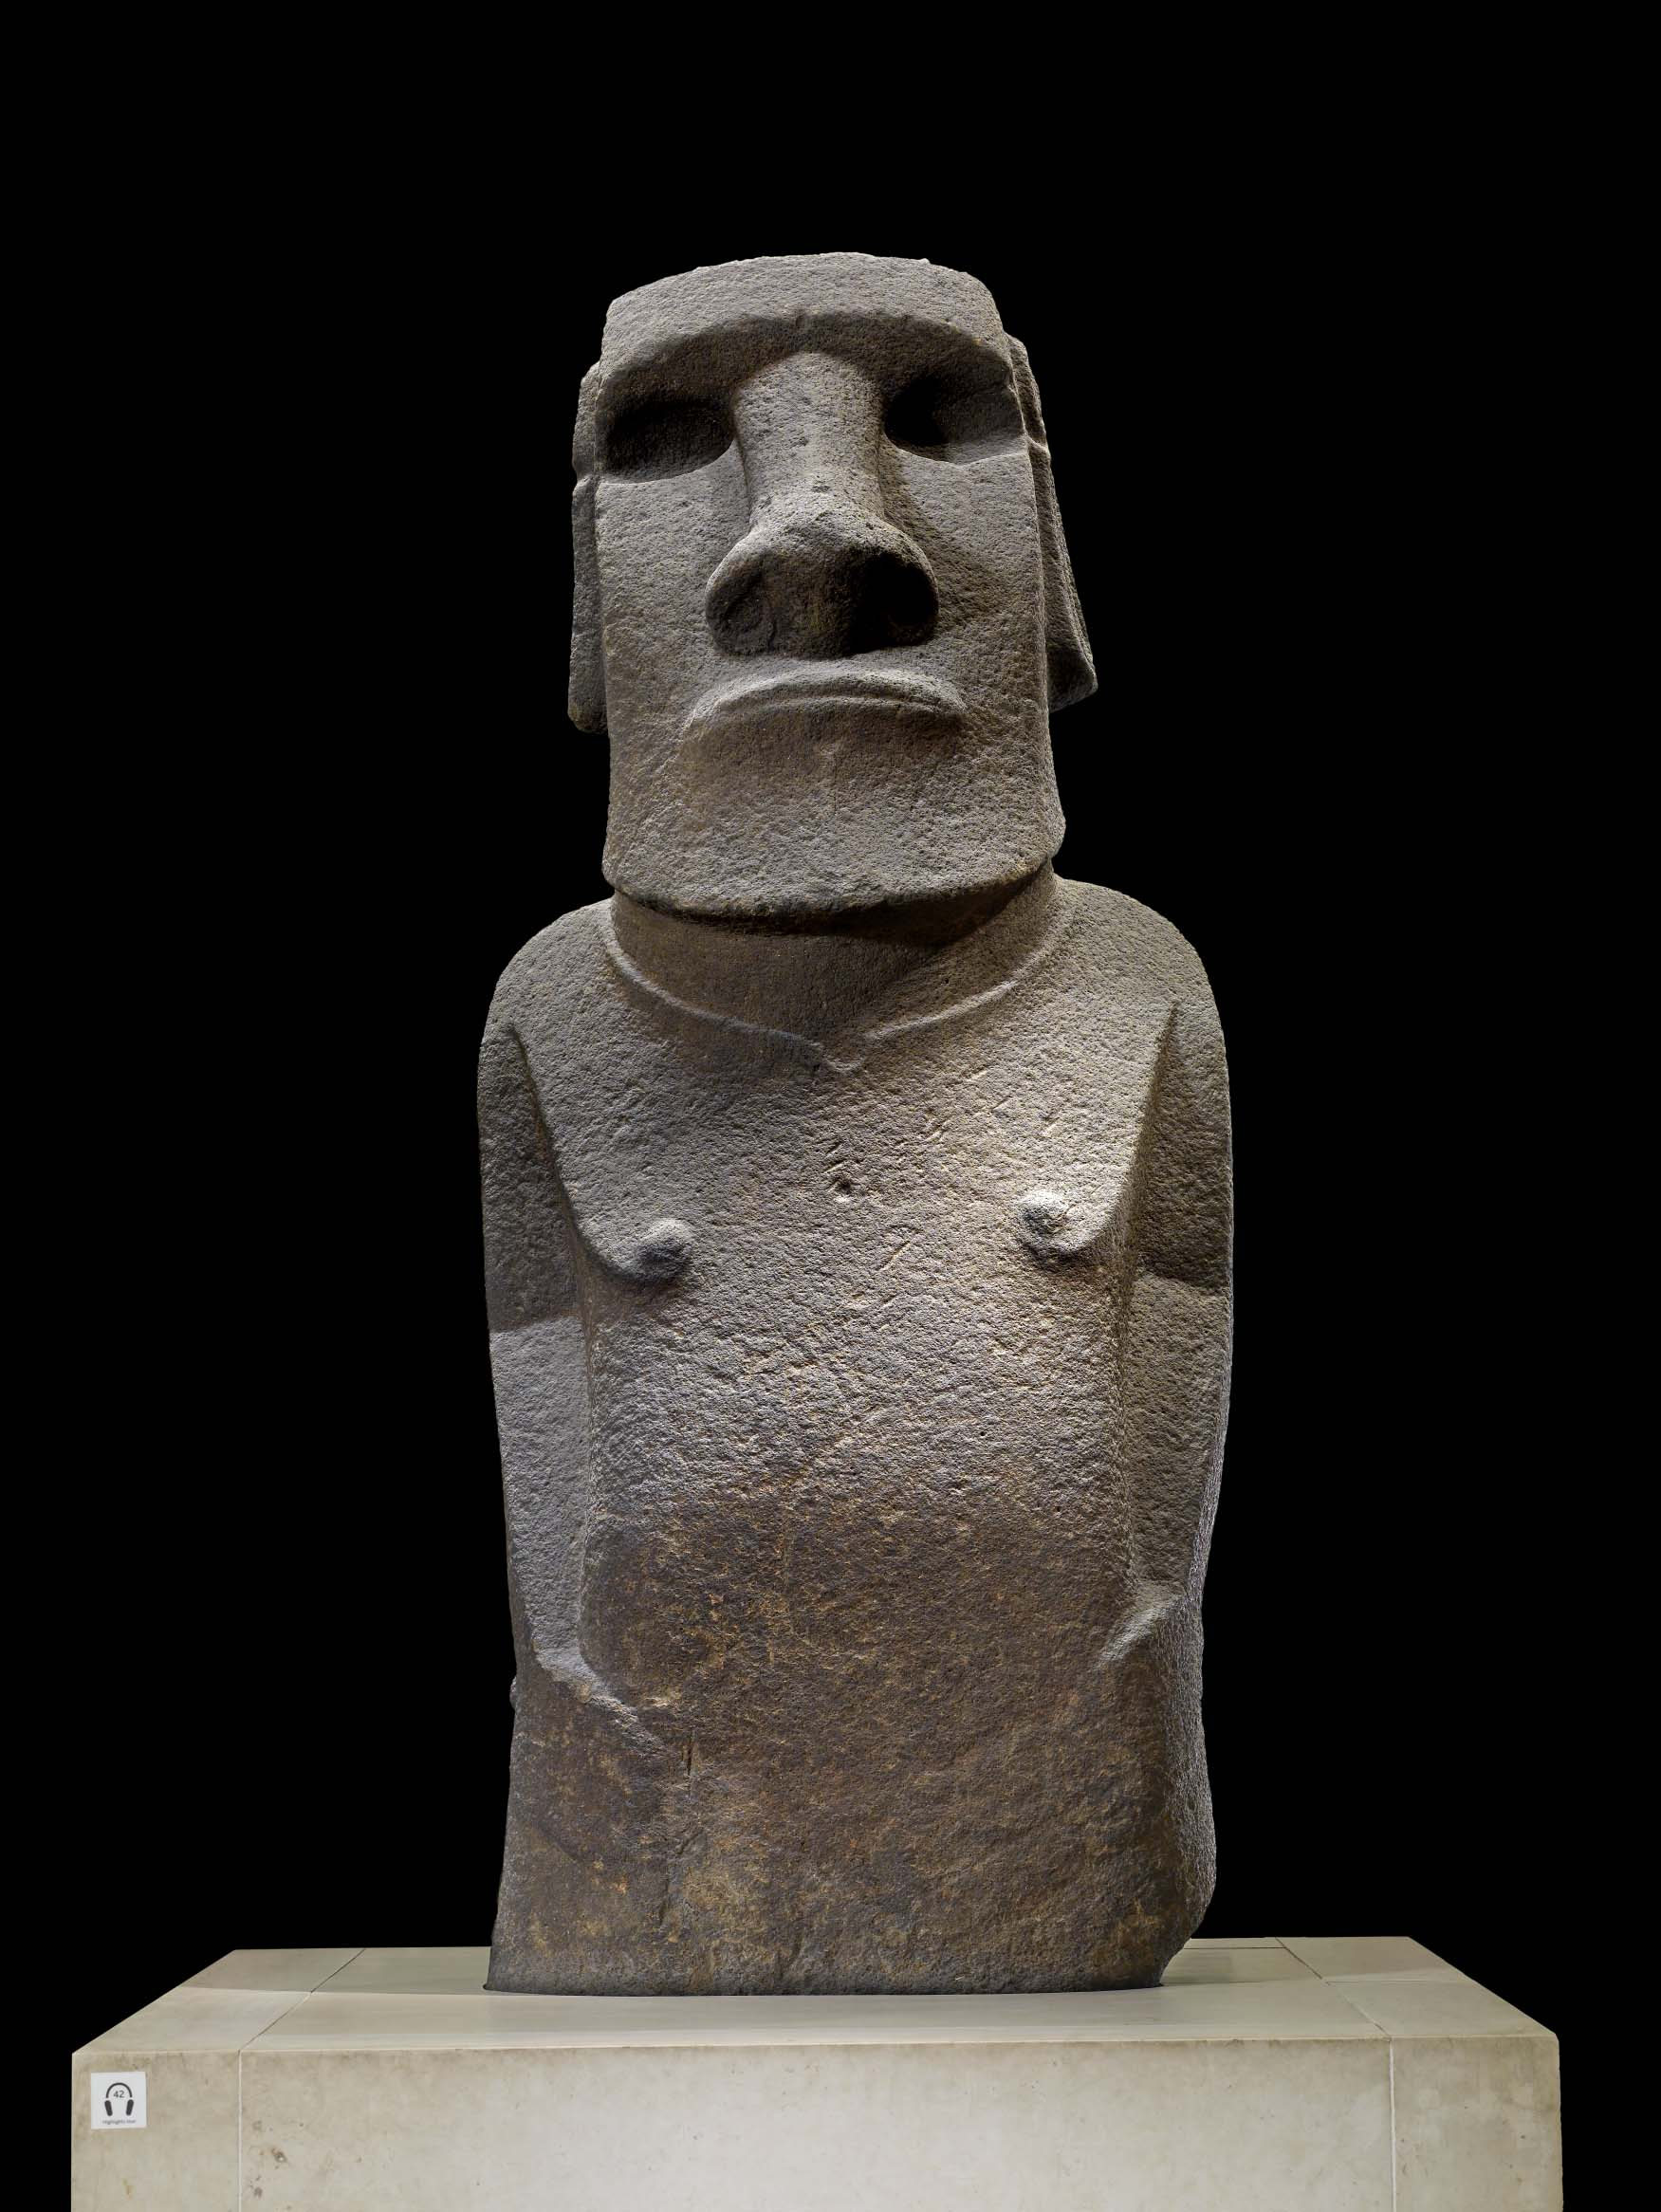 a stone figure with a large square jaw